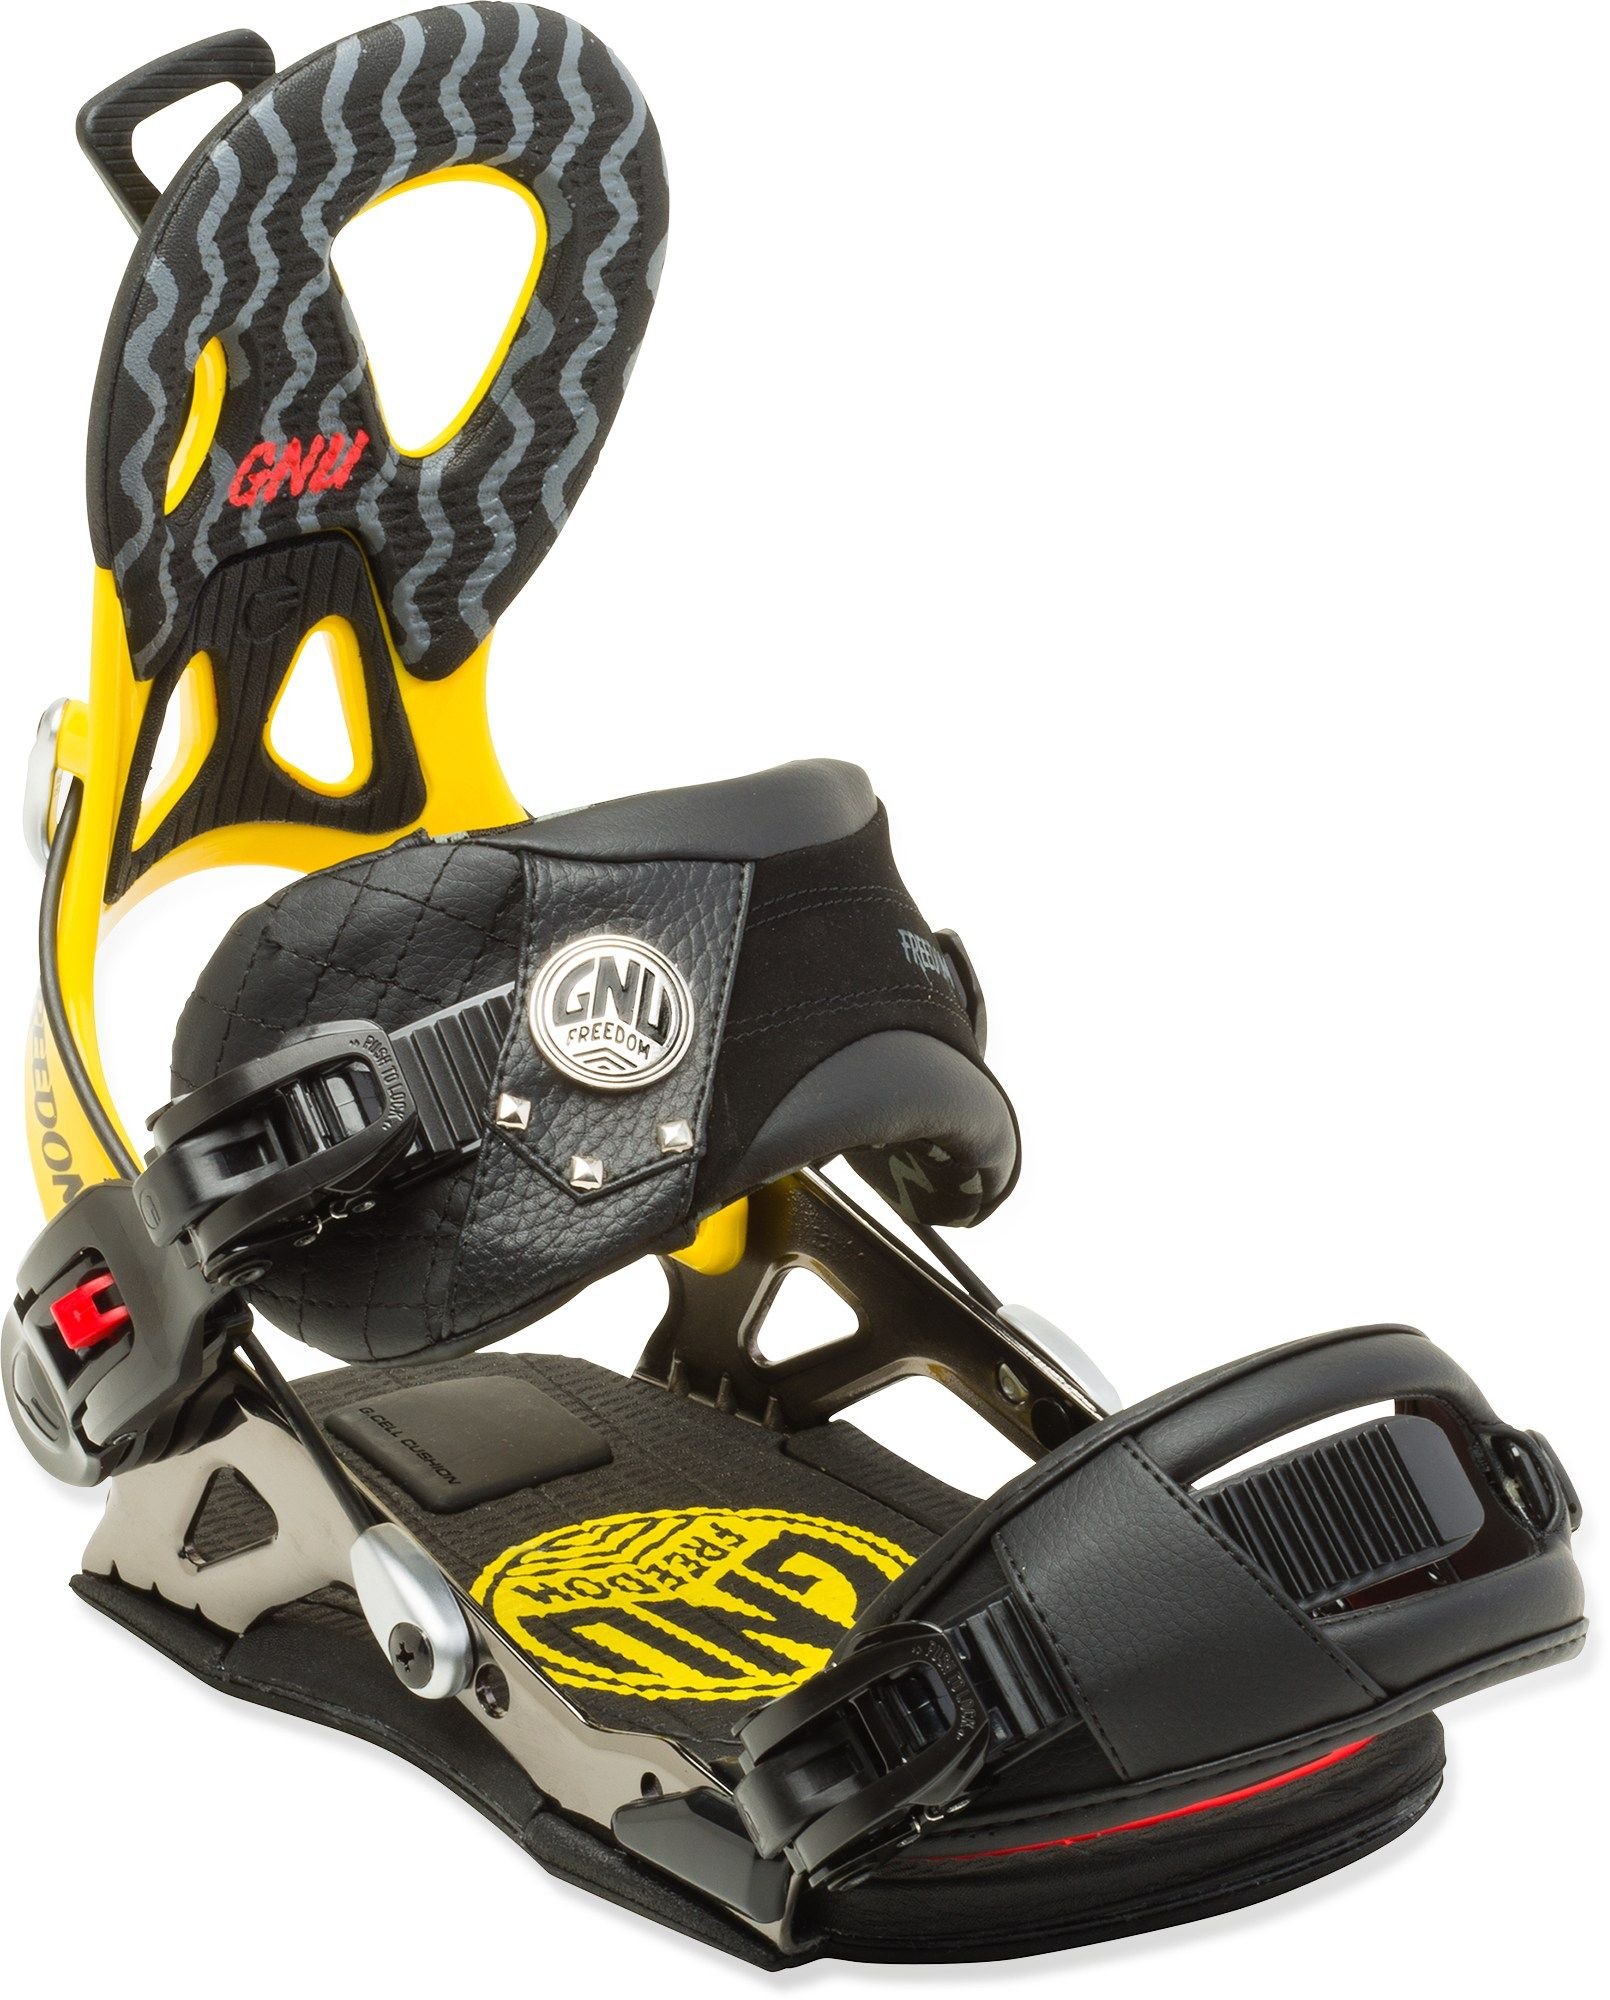 GNU Freedom Snowboard Bindings - Men's - 2015/2016